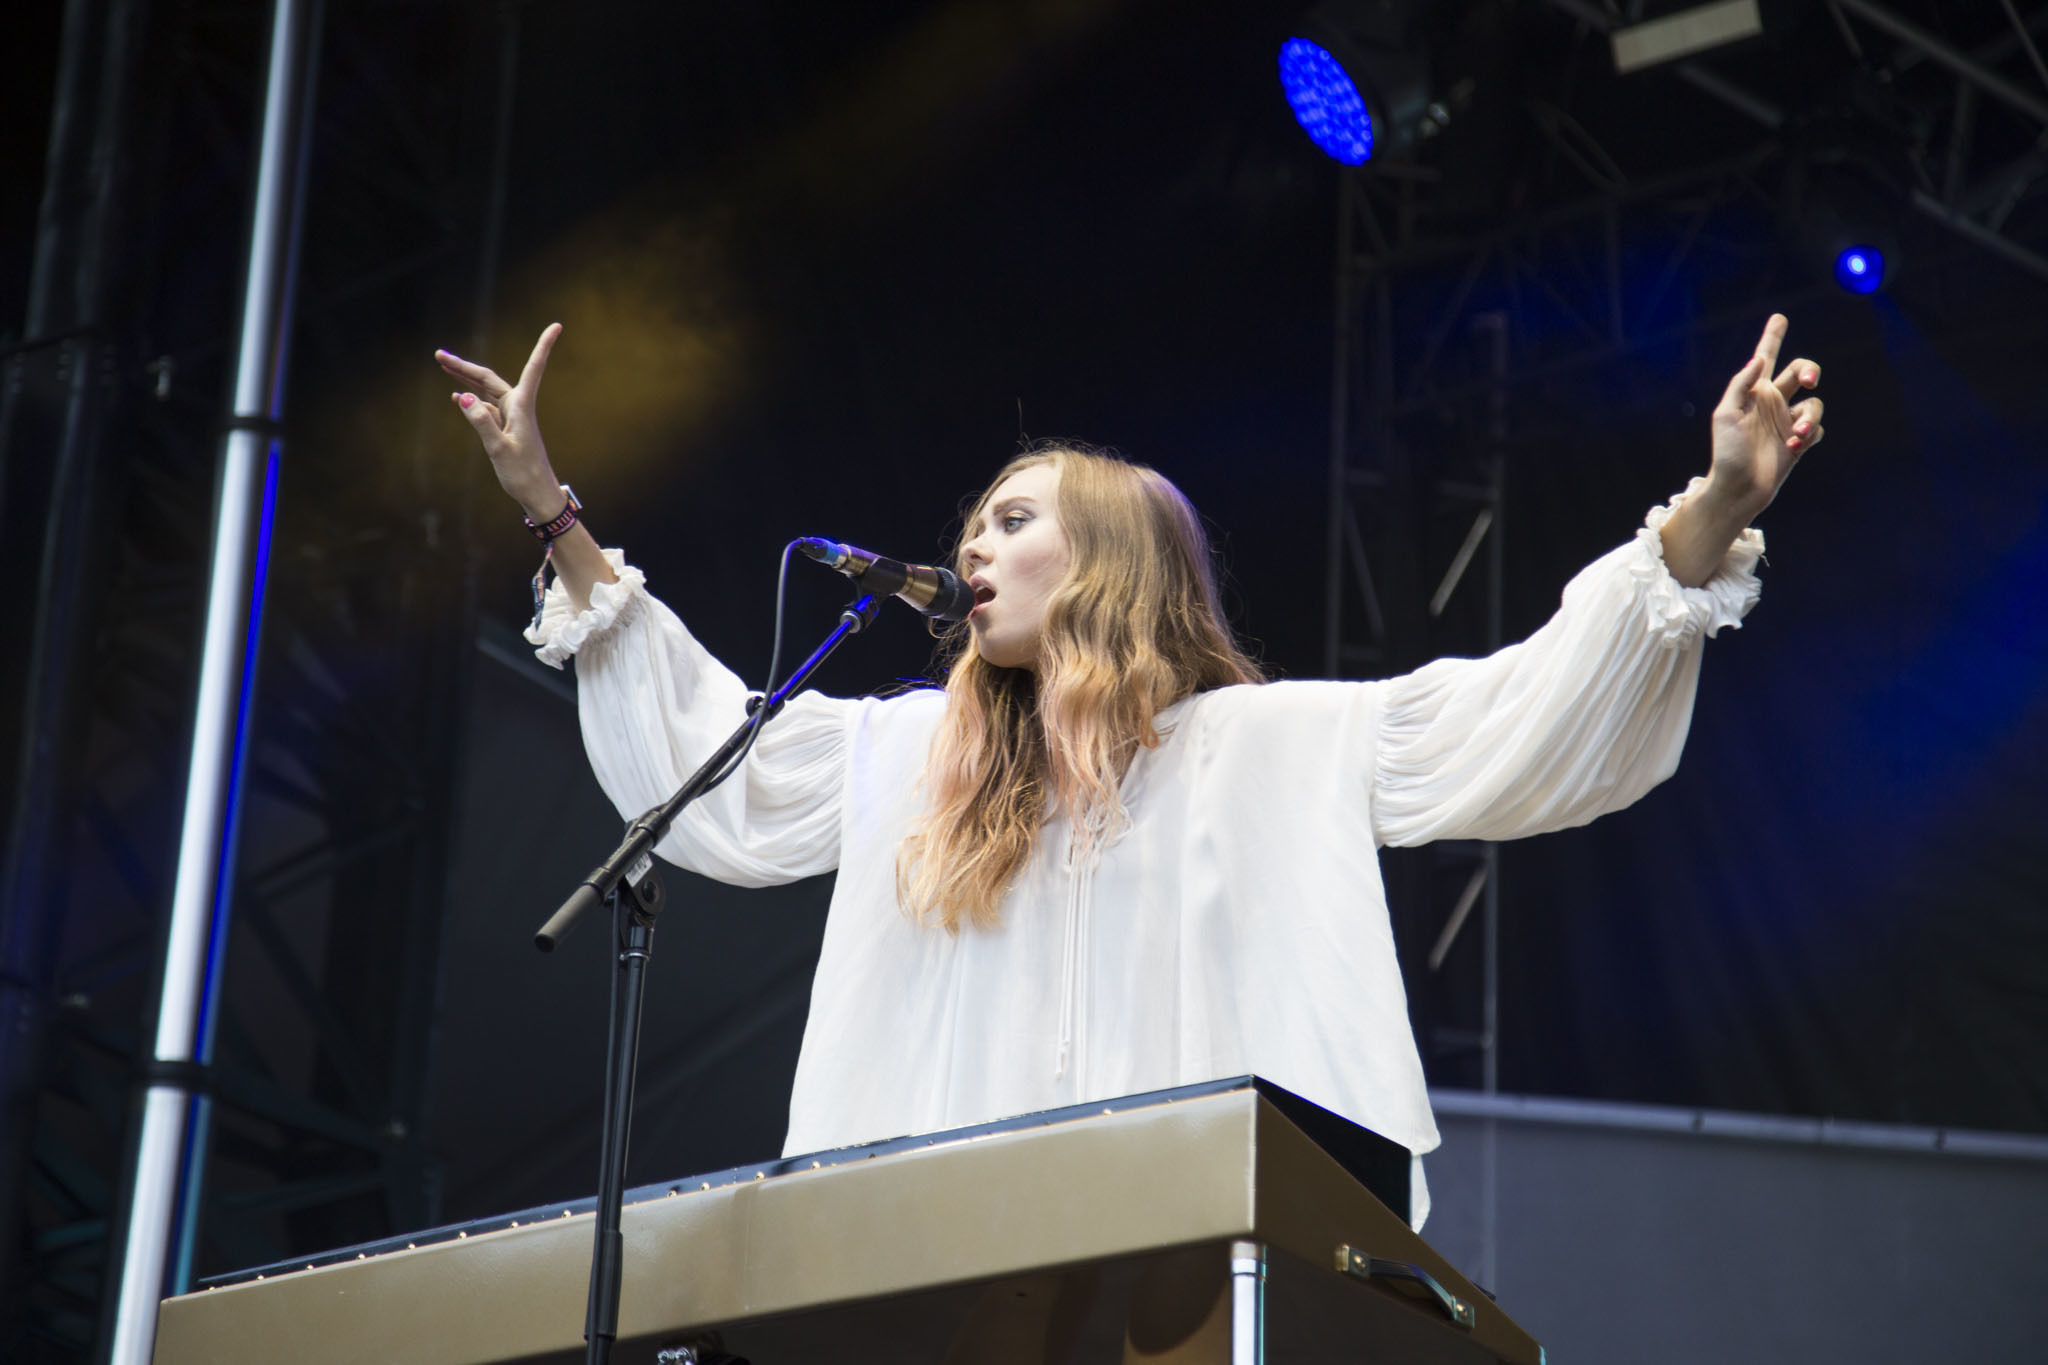 First Aid Kit played to an enthusiastic audience during the first day of Lolllapalooza on July 31, 2015.